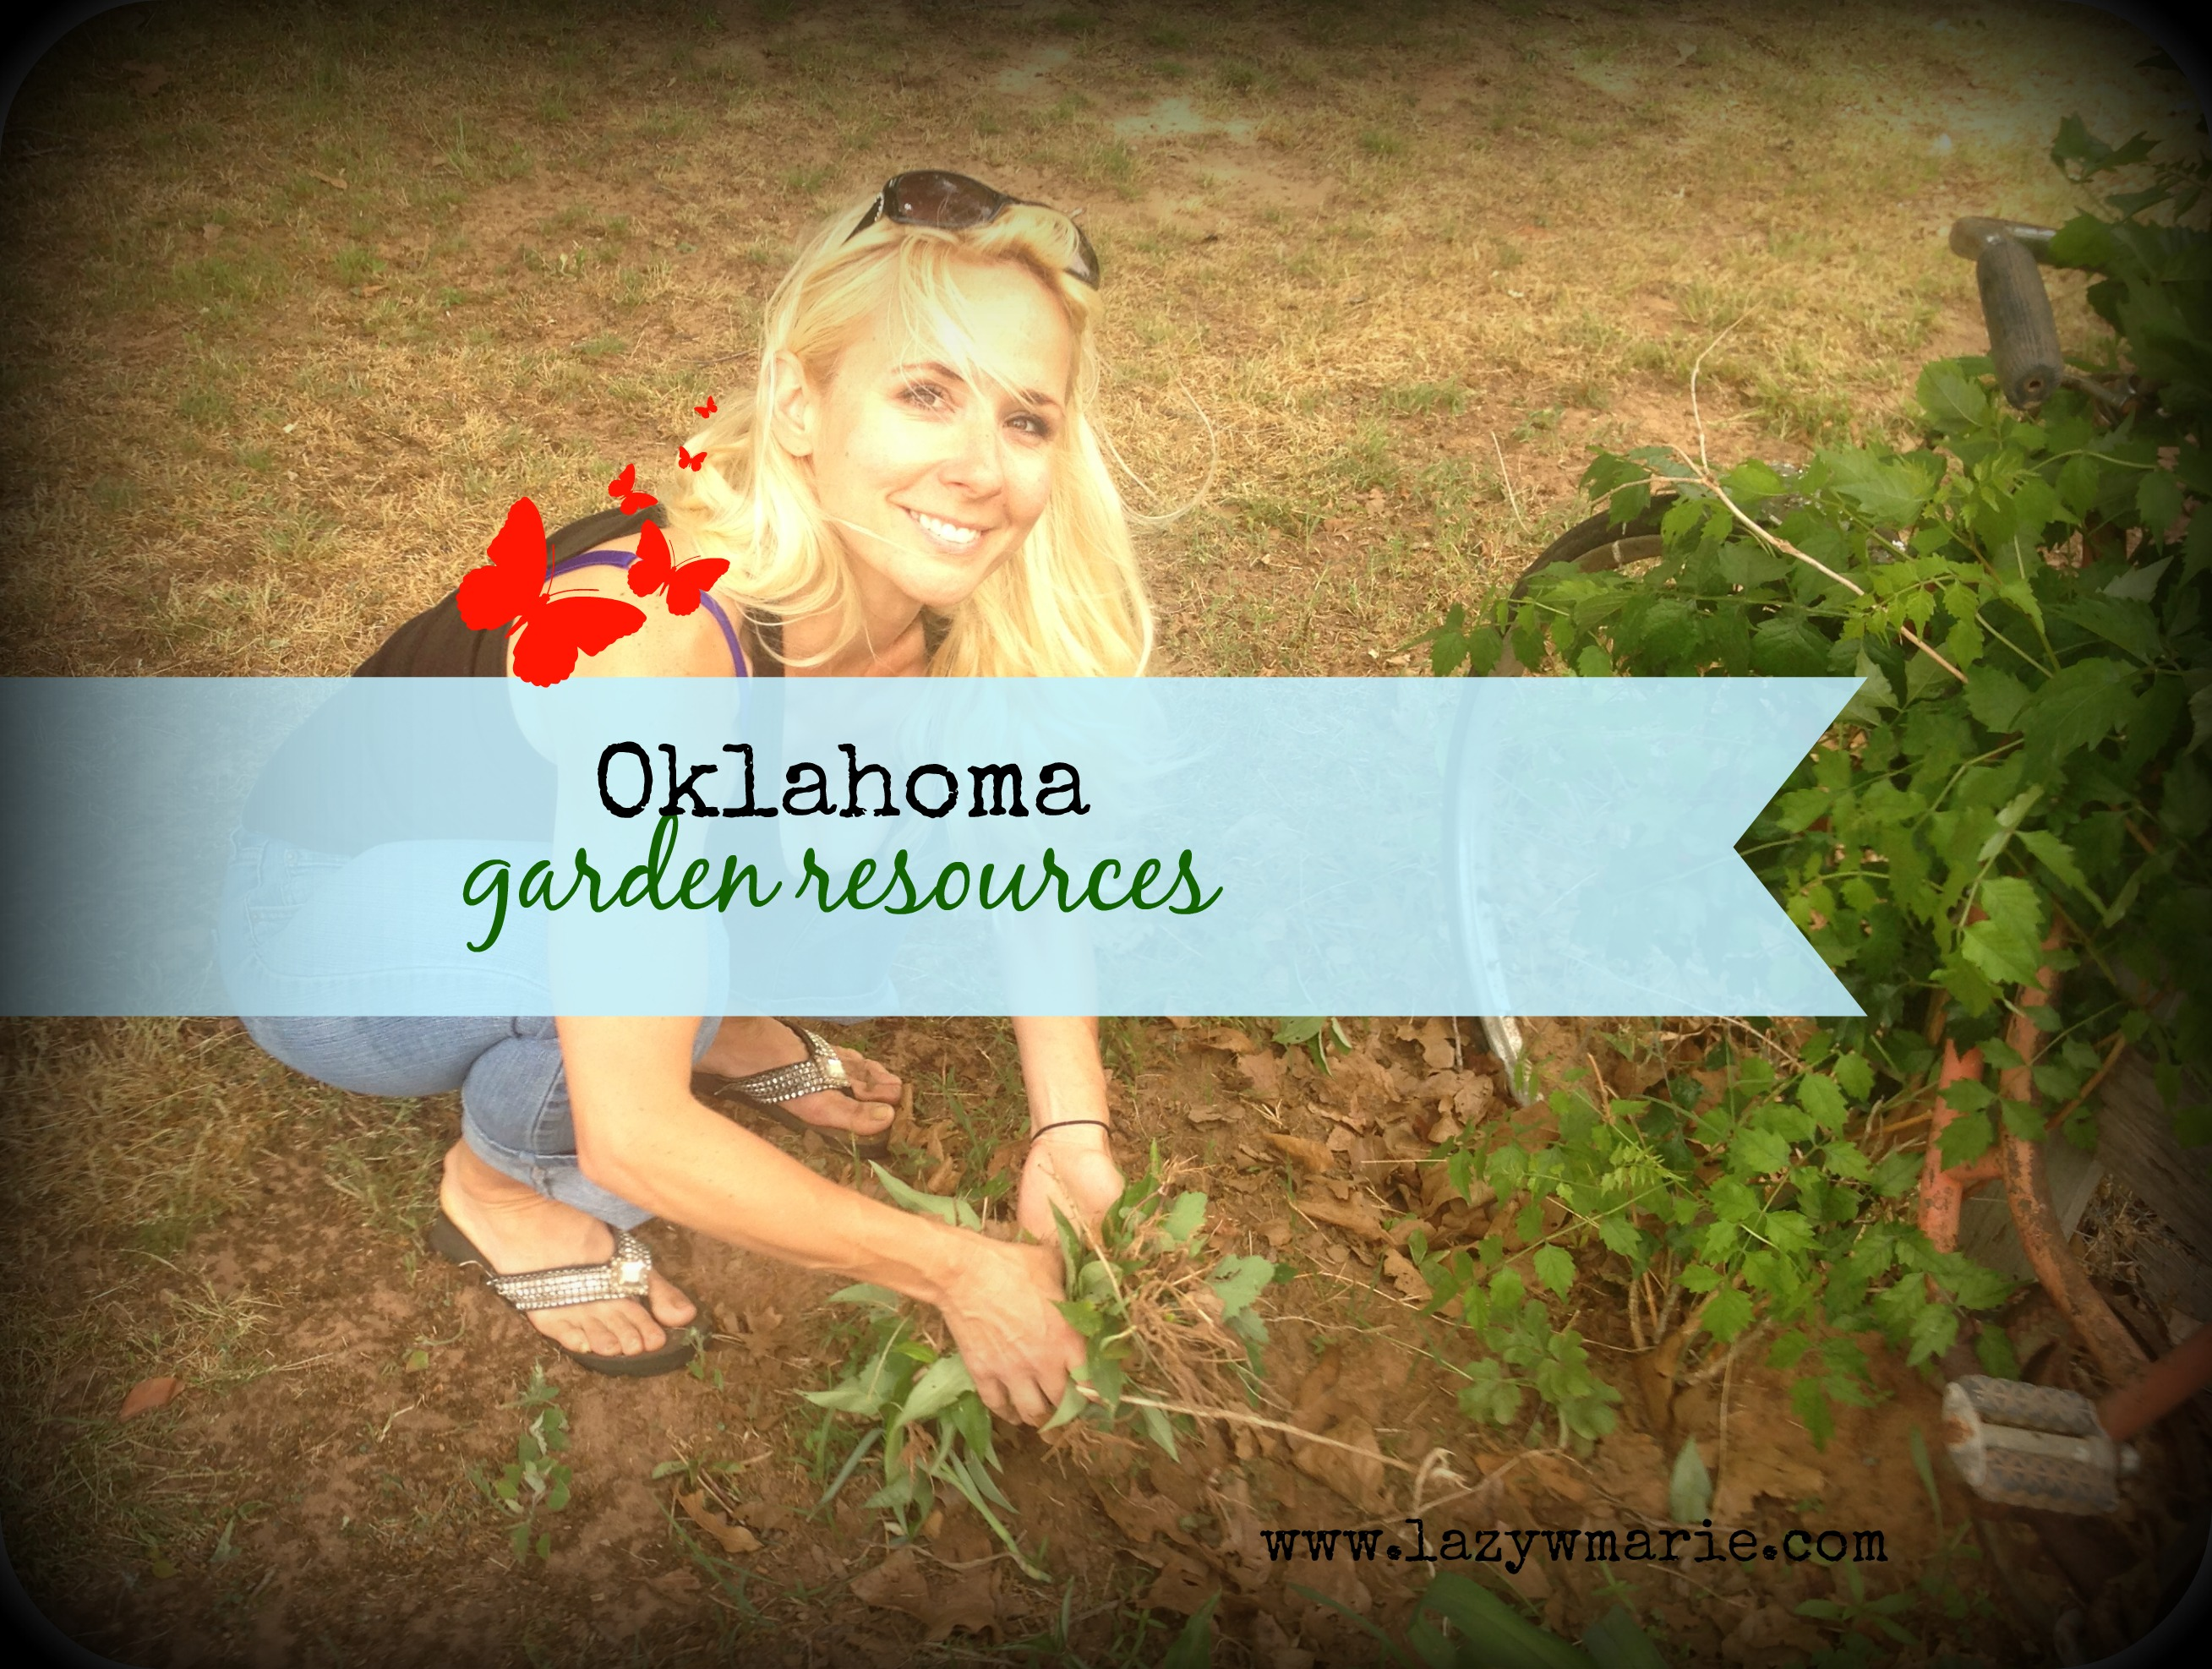 Check out this of resources for Oklahoma gardeners! xoxo